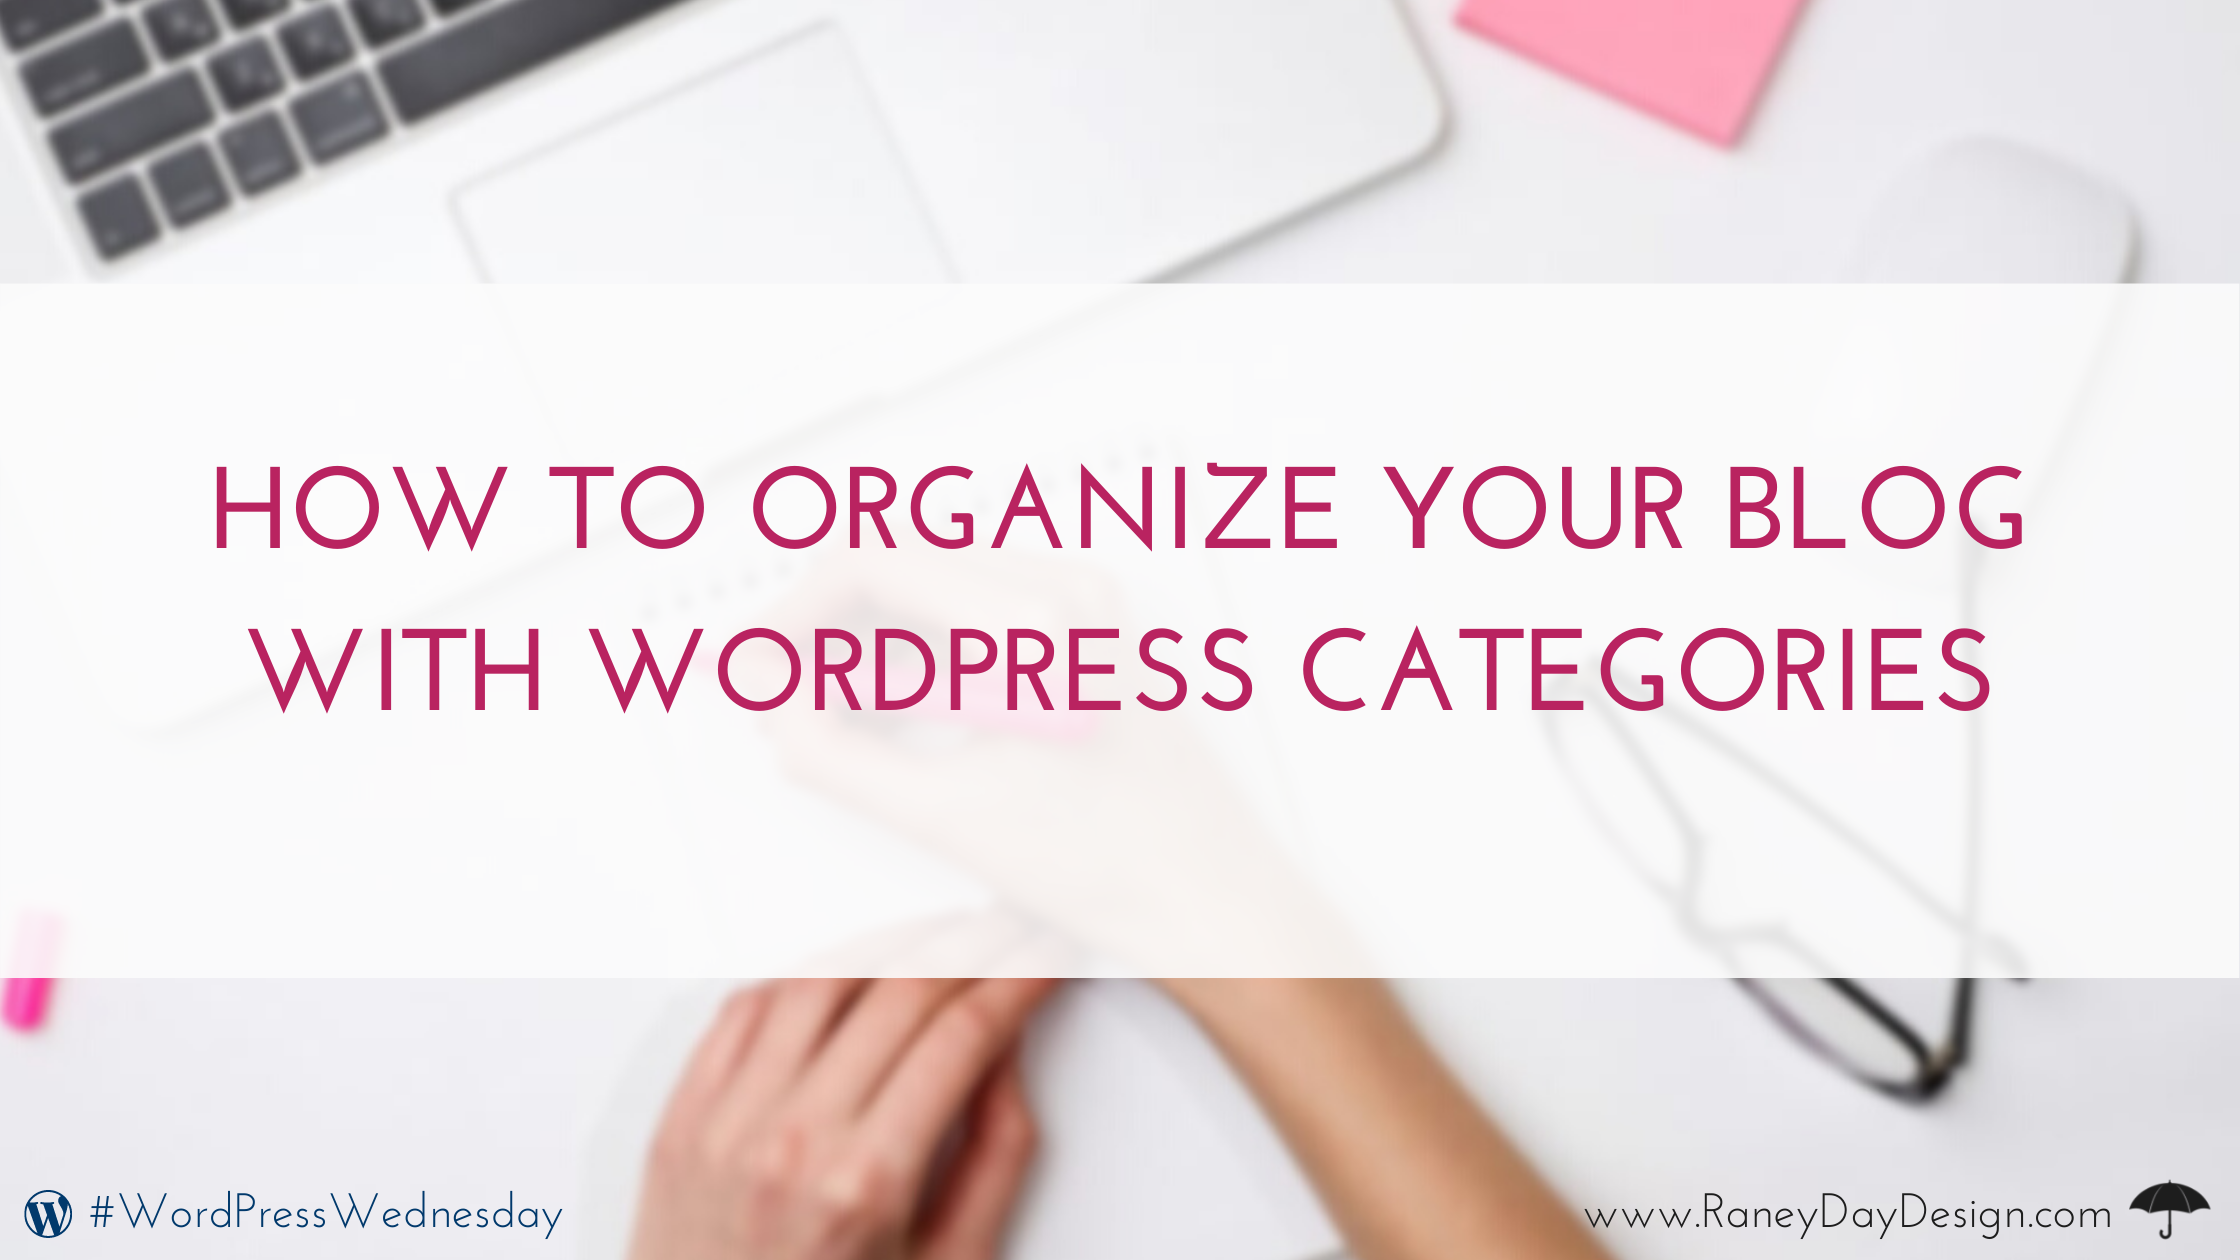 How to Organize Your Blog with WordPress Categories (2)